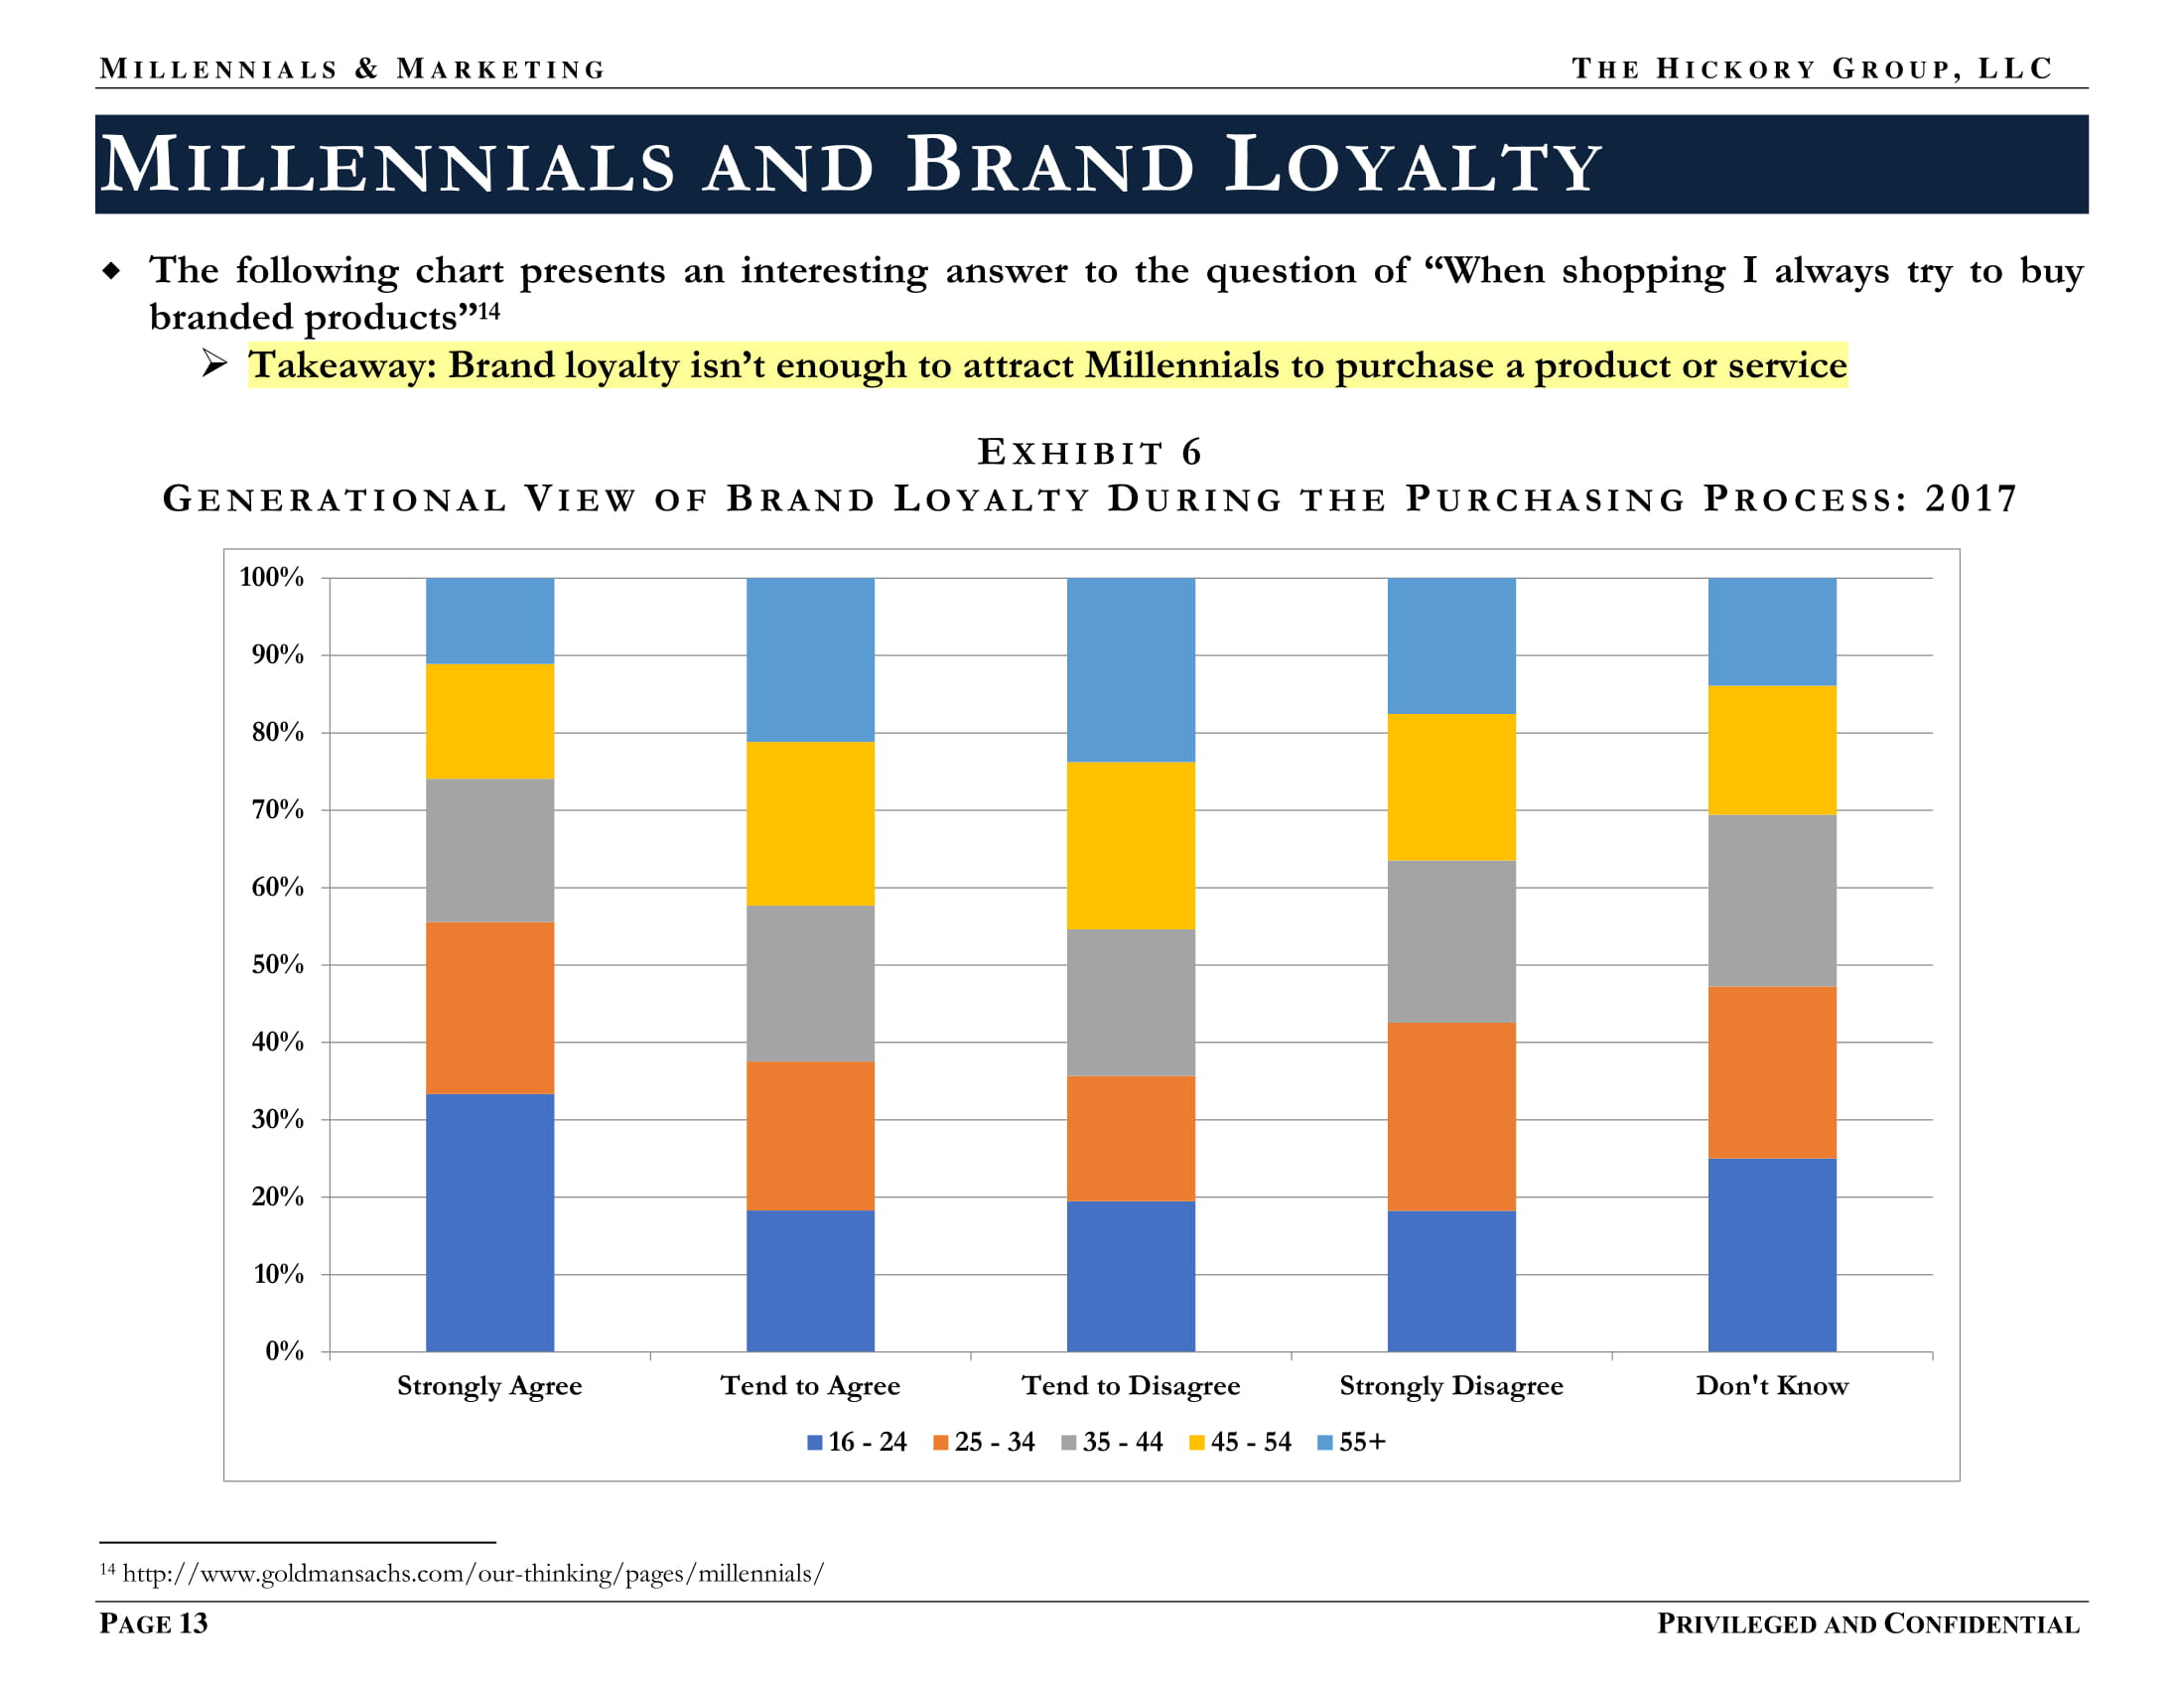 FINAL US Female Millennial Market Summary (December 2017) Privileged and Confidential-13.jpg